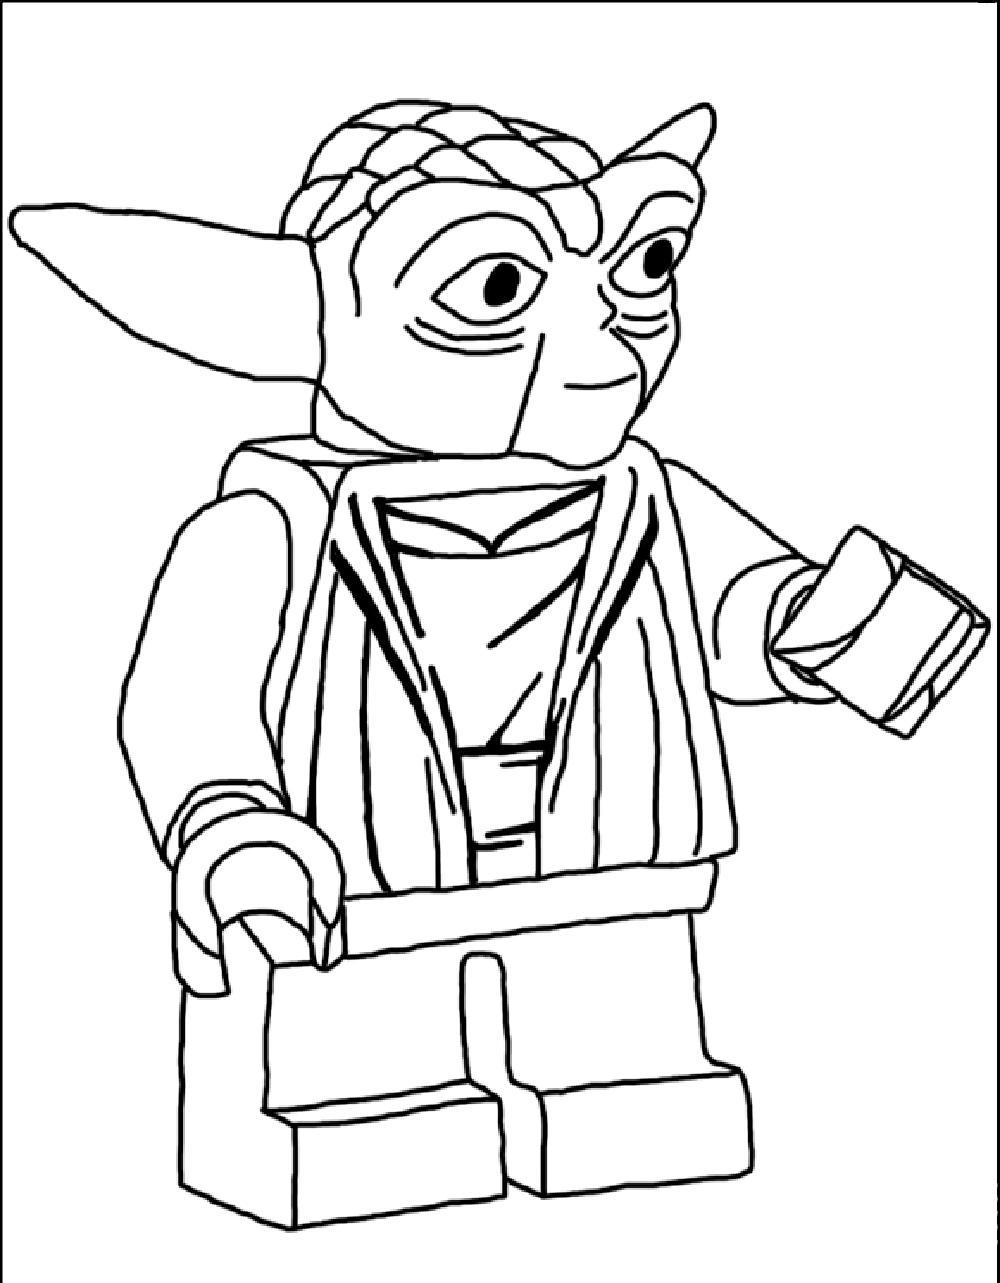 lego star wars coloring book lego star wars coloring pages free timeless miraclecom coloring wars book star lego